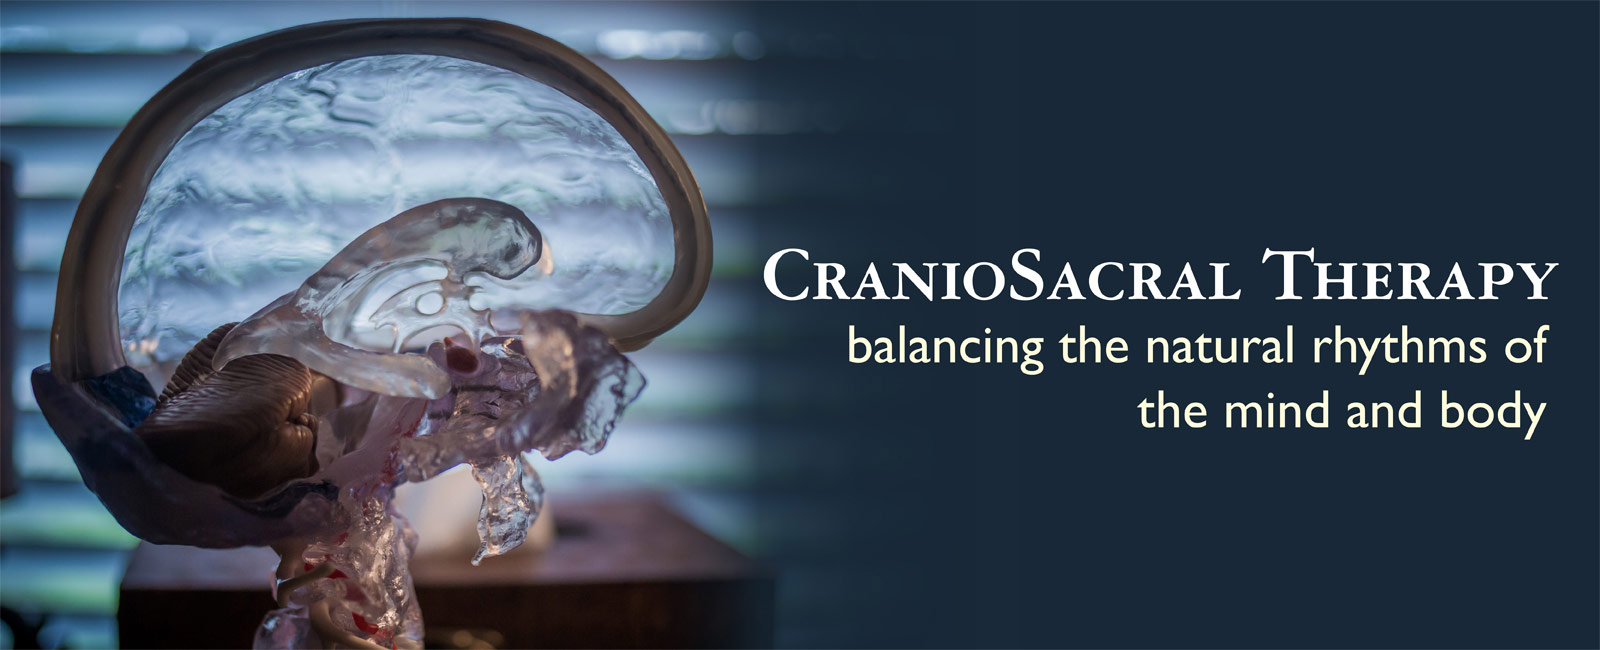 CranioSacral Therapy: Balancing the natural rhythms of the mind and body.